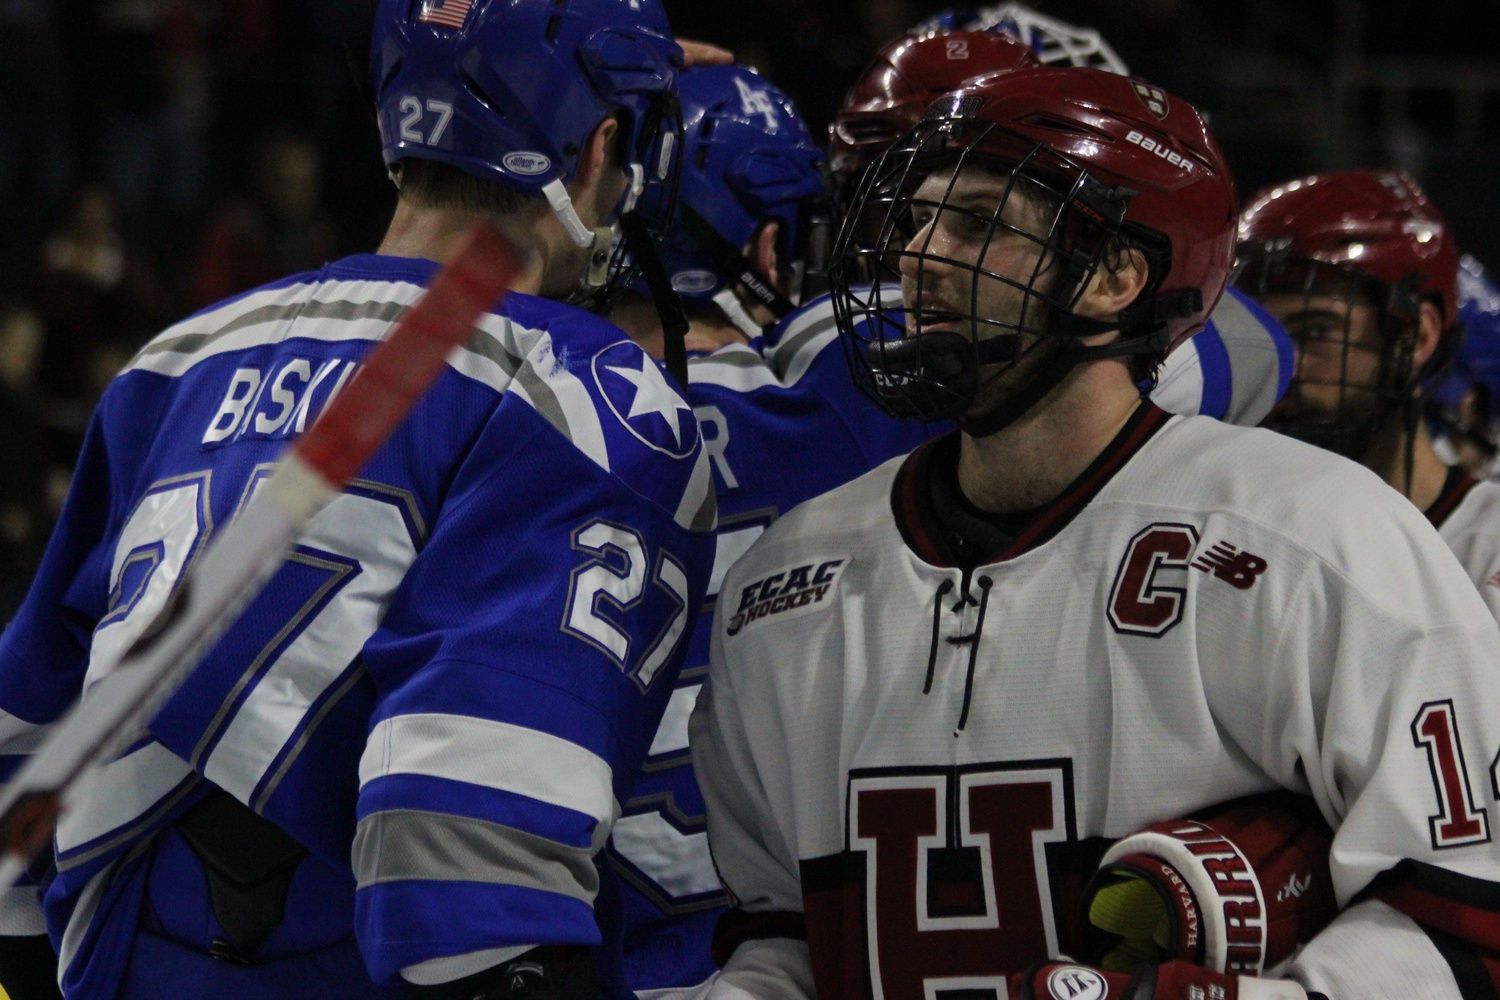 Alexander Kerfoot makes his way through the handshake line after Harvard's 3-2 win over Air Force in the East Regional.